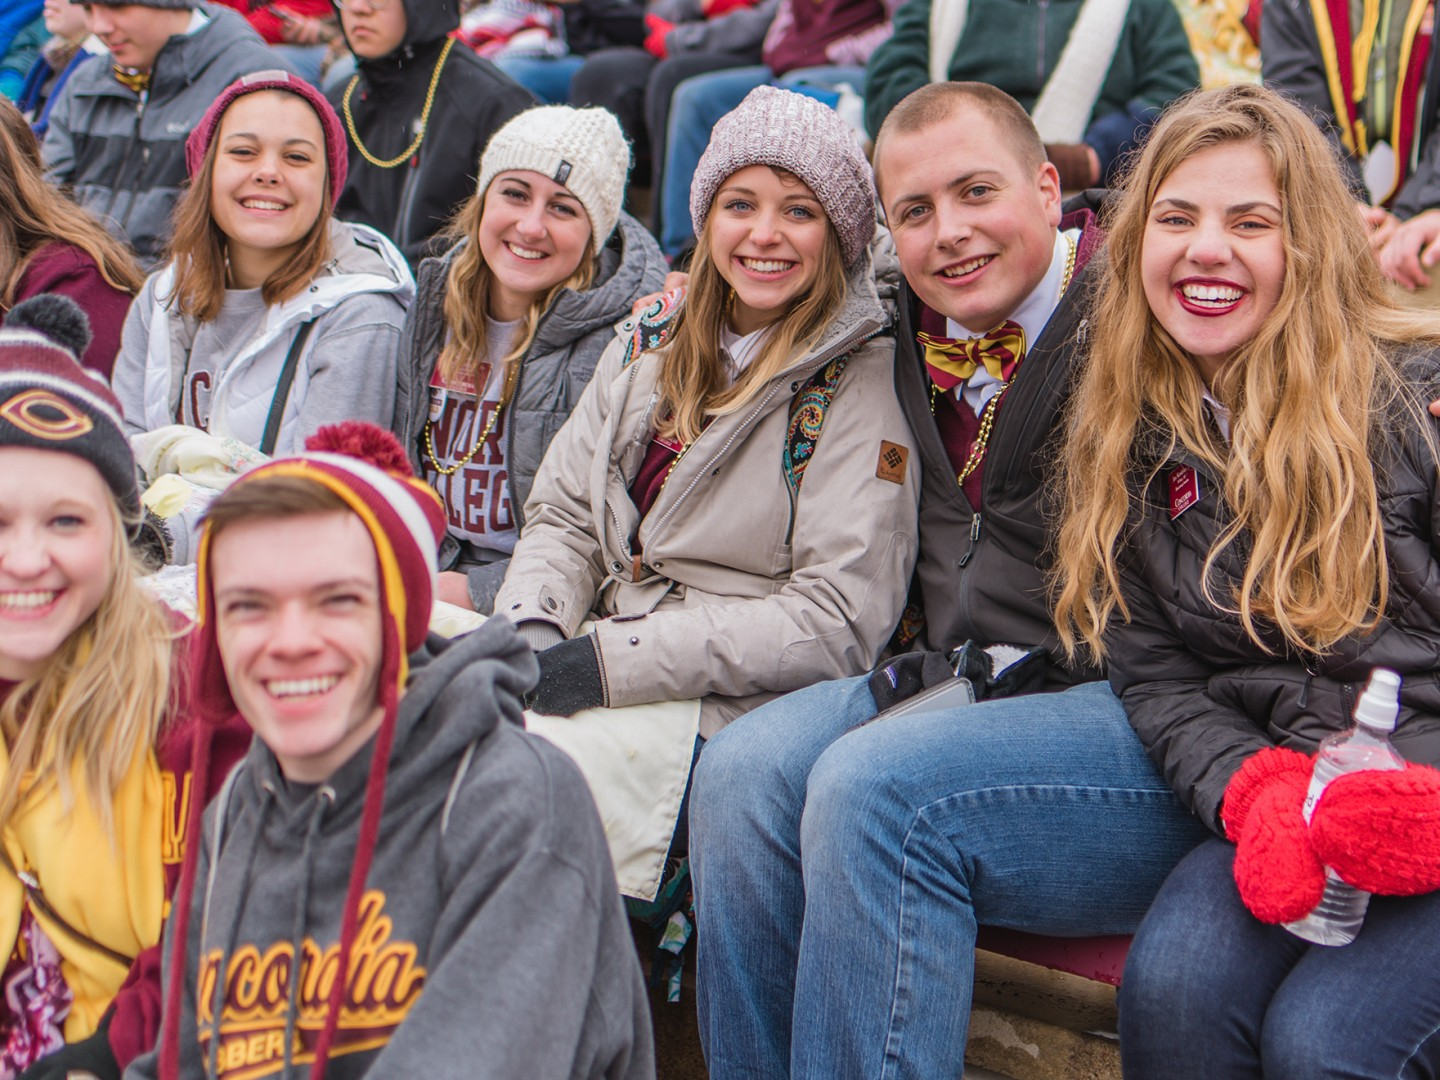 Tate Hovland and students in stands at football game